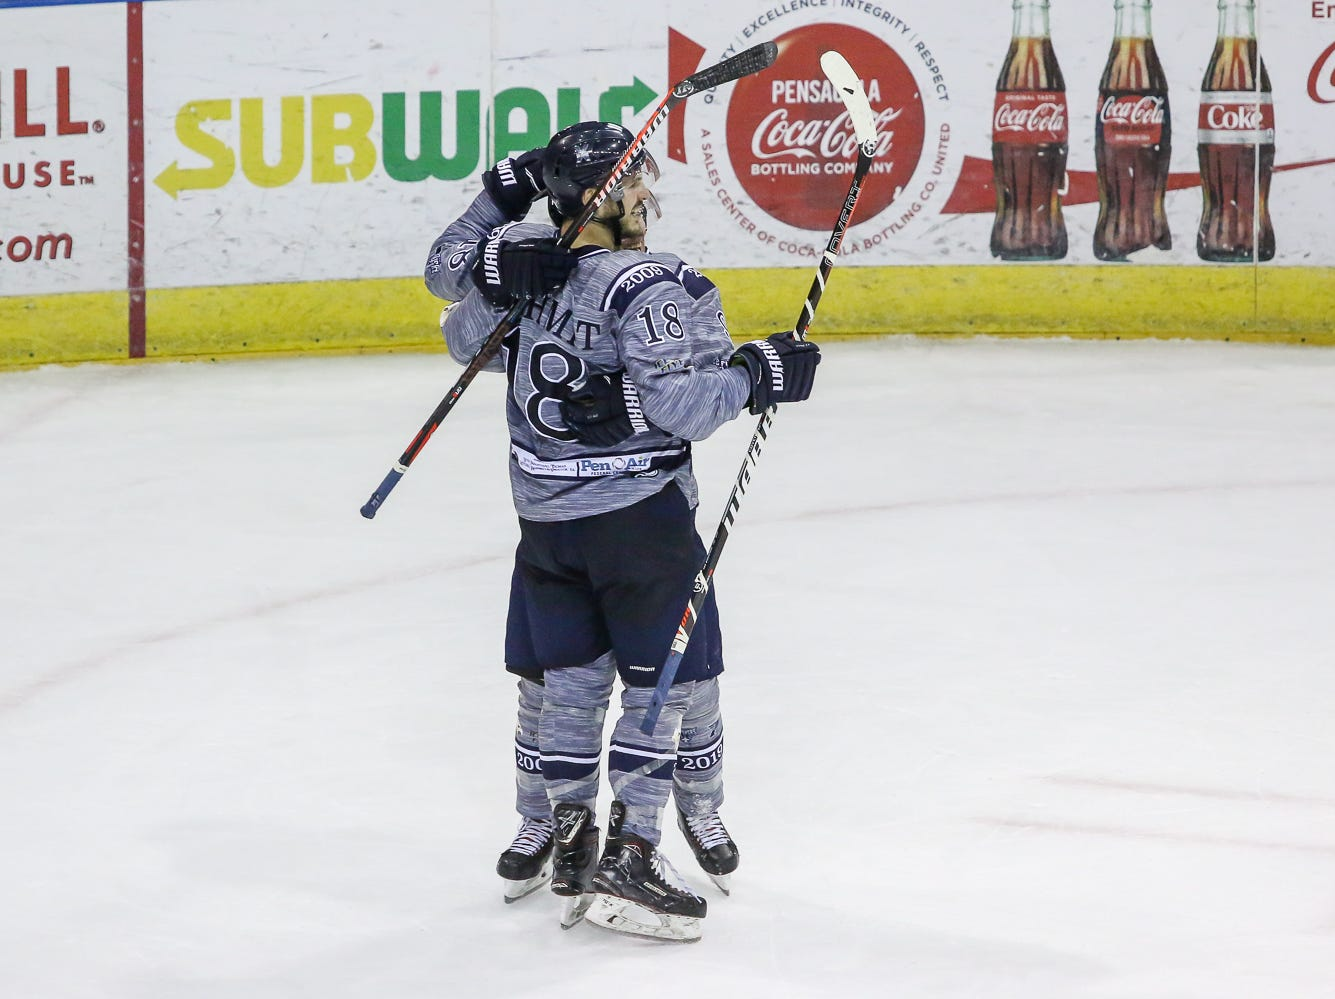 Pensacola's Andrew Schmit (18) celebrates after scoring an empty net goal against Macon during the last home game of the regular season at the Pensacola Bay Center on Saturday, March 23, 2019. With over 4,300 people in attendance for Pensacola's 3-1 victory, the Ice Flyers mark six straight years of over 100,000 people at their home games each season. The team has won their last five games in a row and will finish out their last five games on the road before entering the playoffs in a couple of weeks.